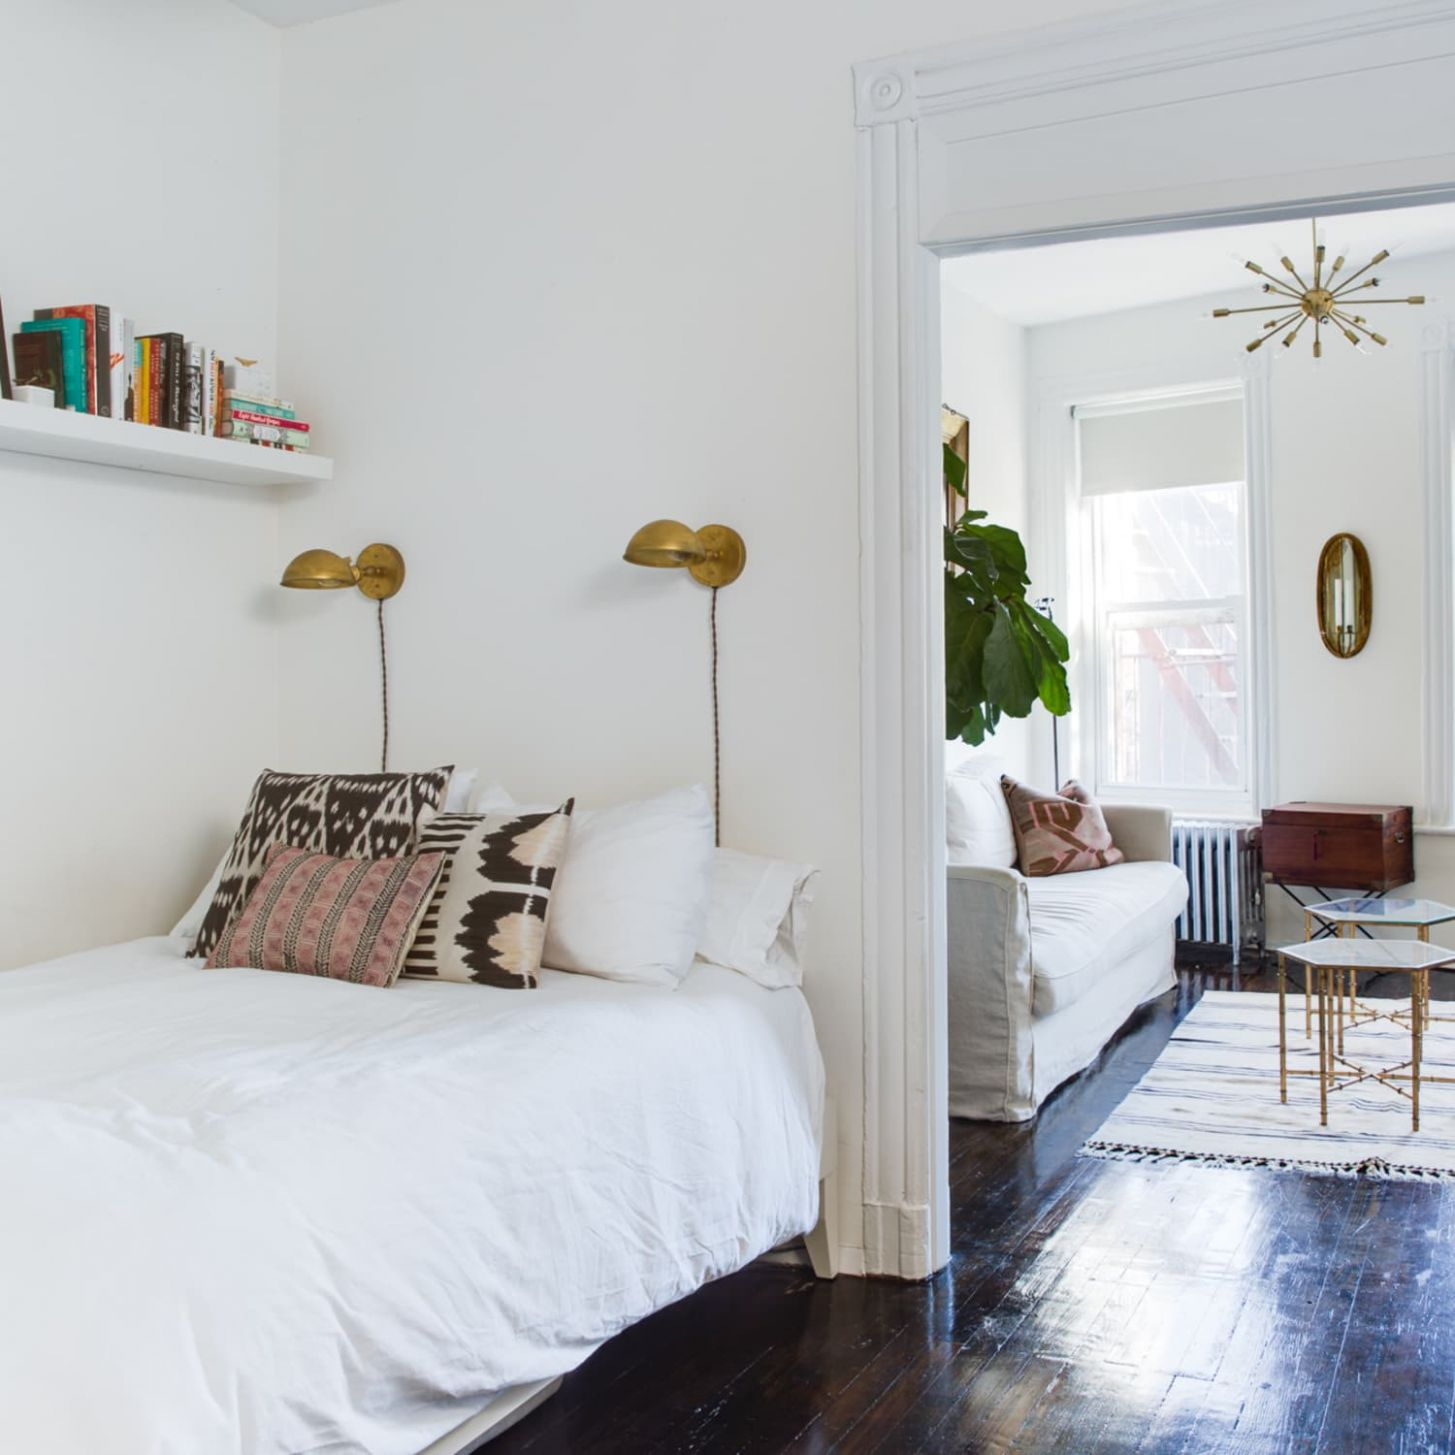 Best Small Bedroom Ideas - Design and Storage Tips | Apartment Therapy - small bedroom ideas queen bed